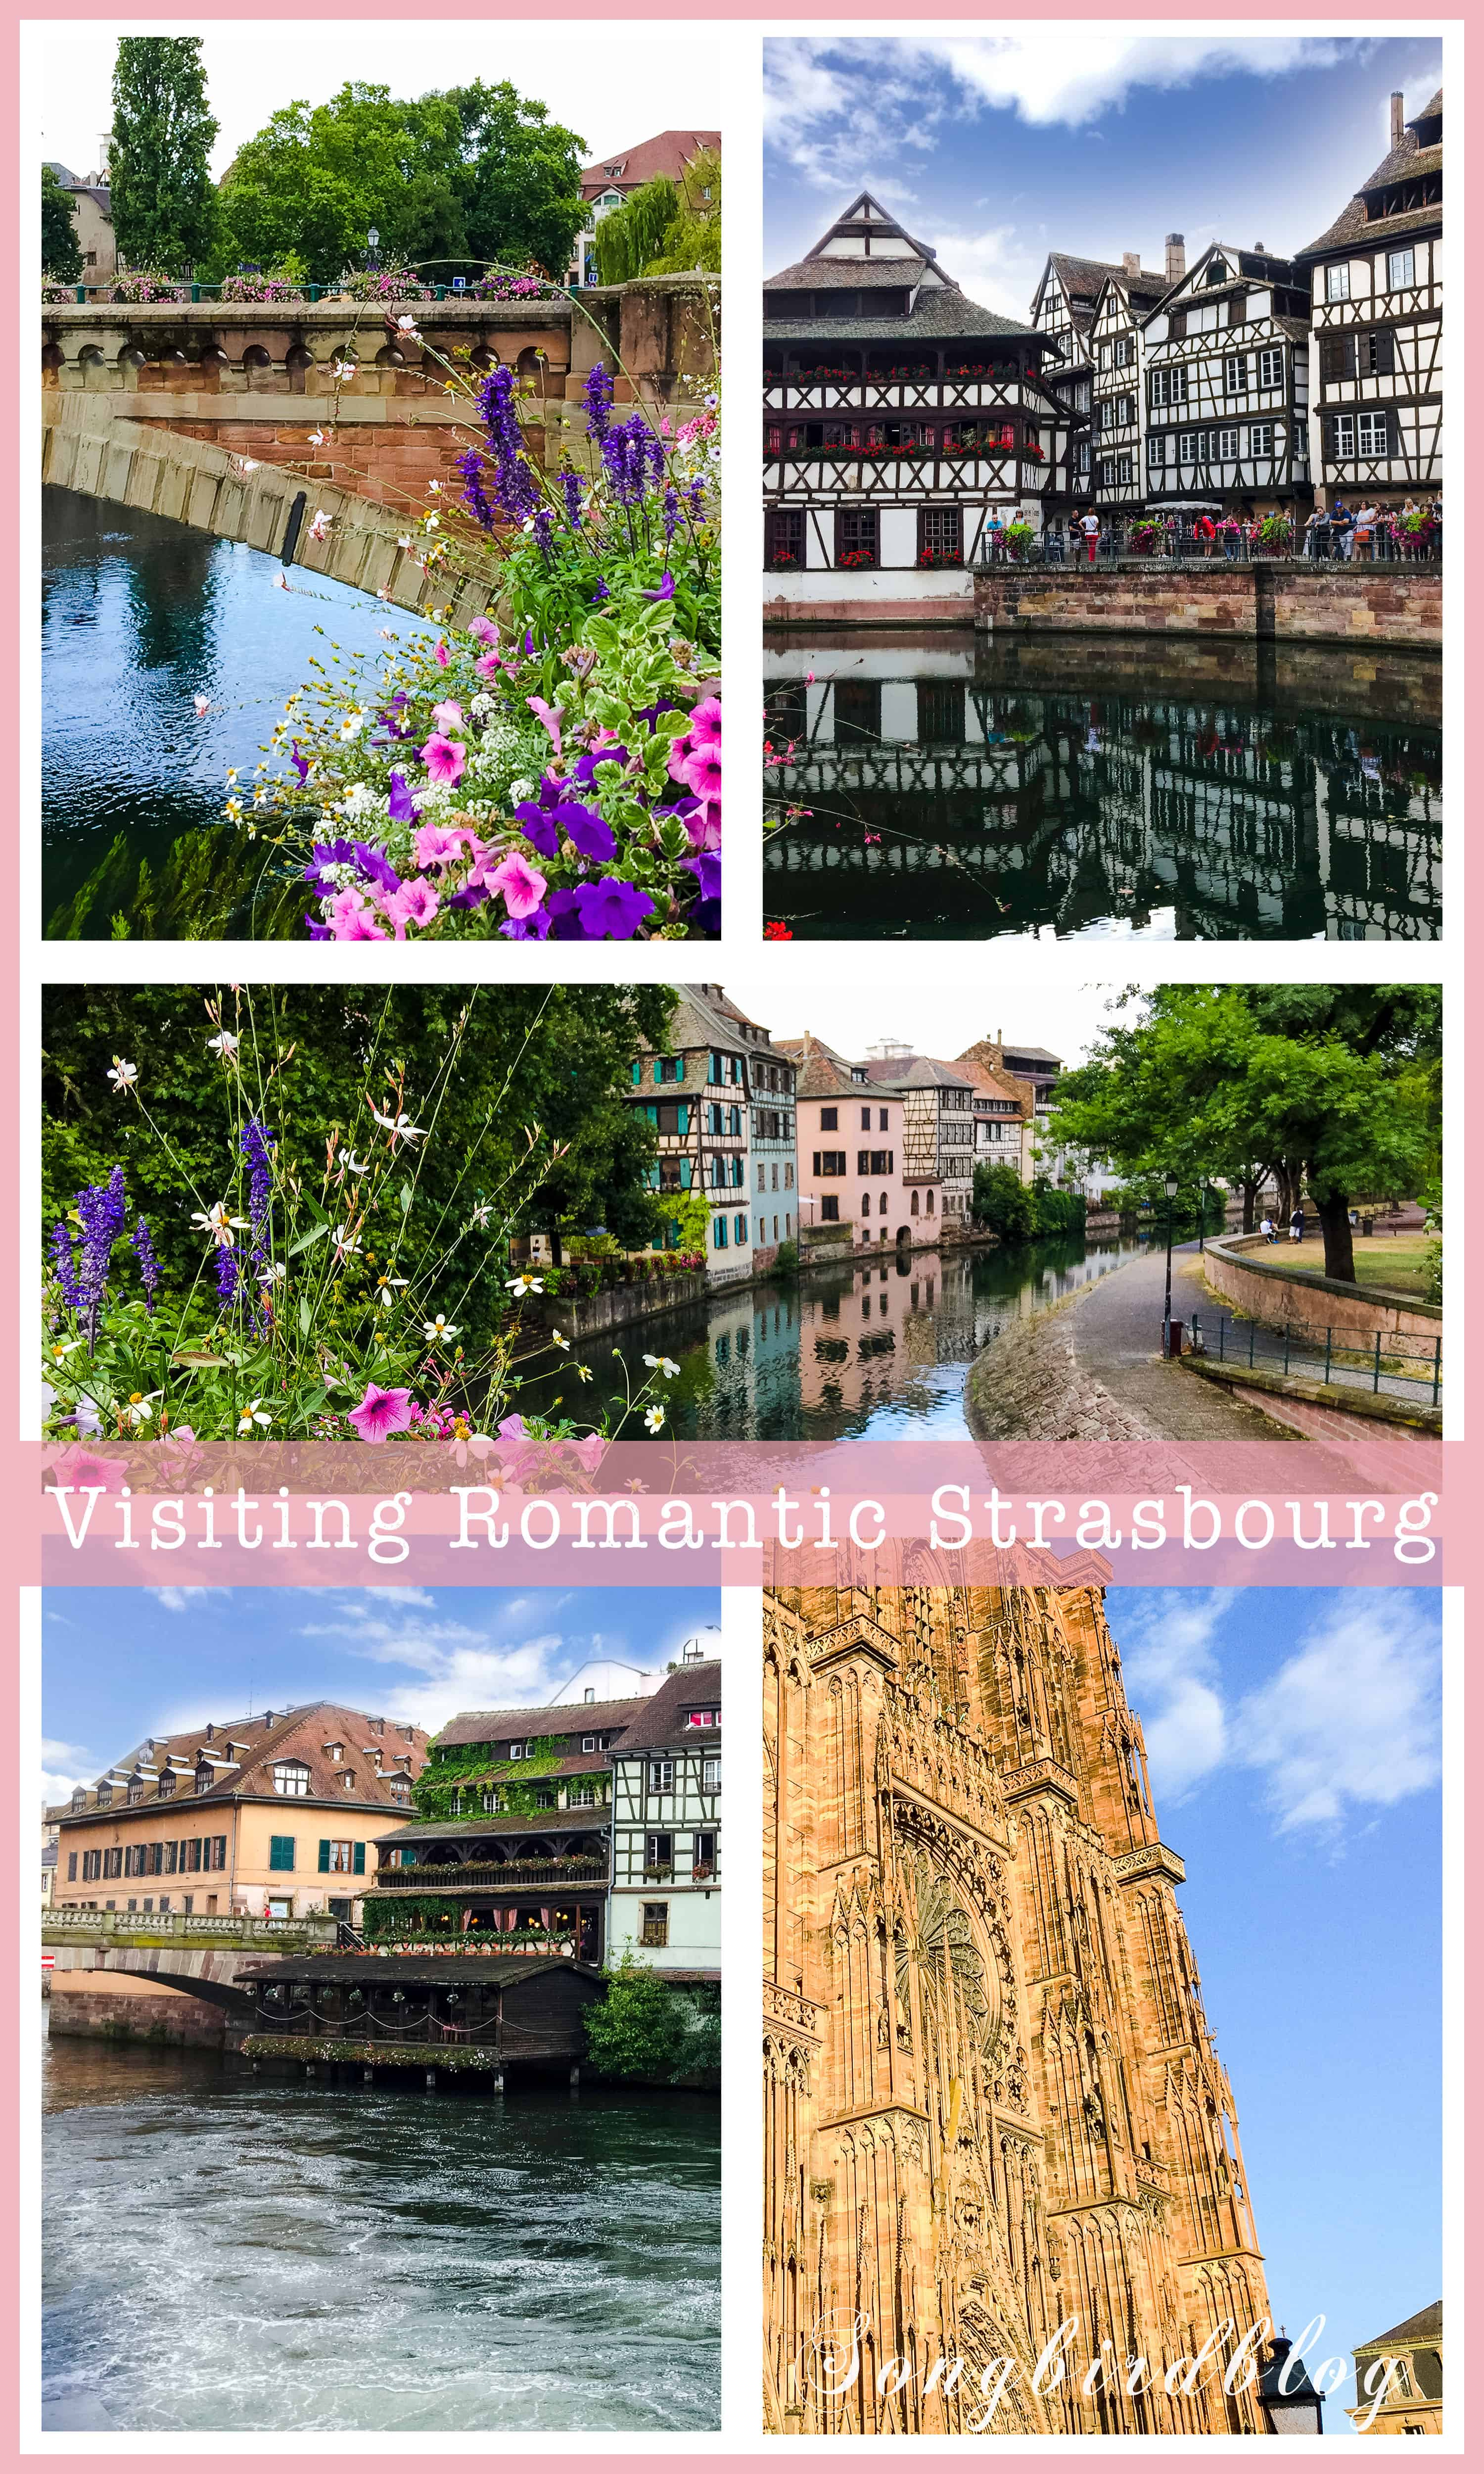 Strasbourg in France is a beautiful, romantic destination for a weekend trip or short vacation. Make sure you visit it if you are staying in the Alsace region. #Strasbourg #France #weekend trip #travel #europe #cities #romantic